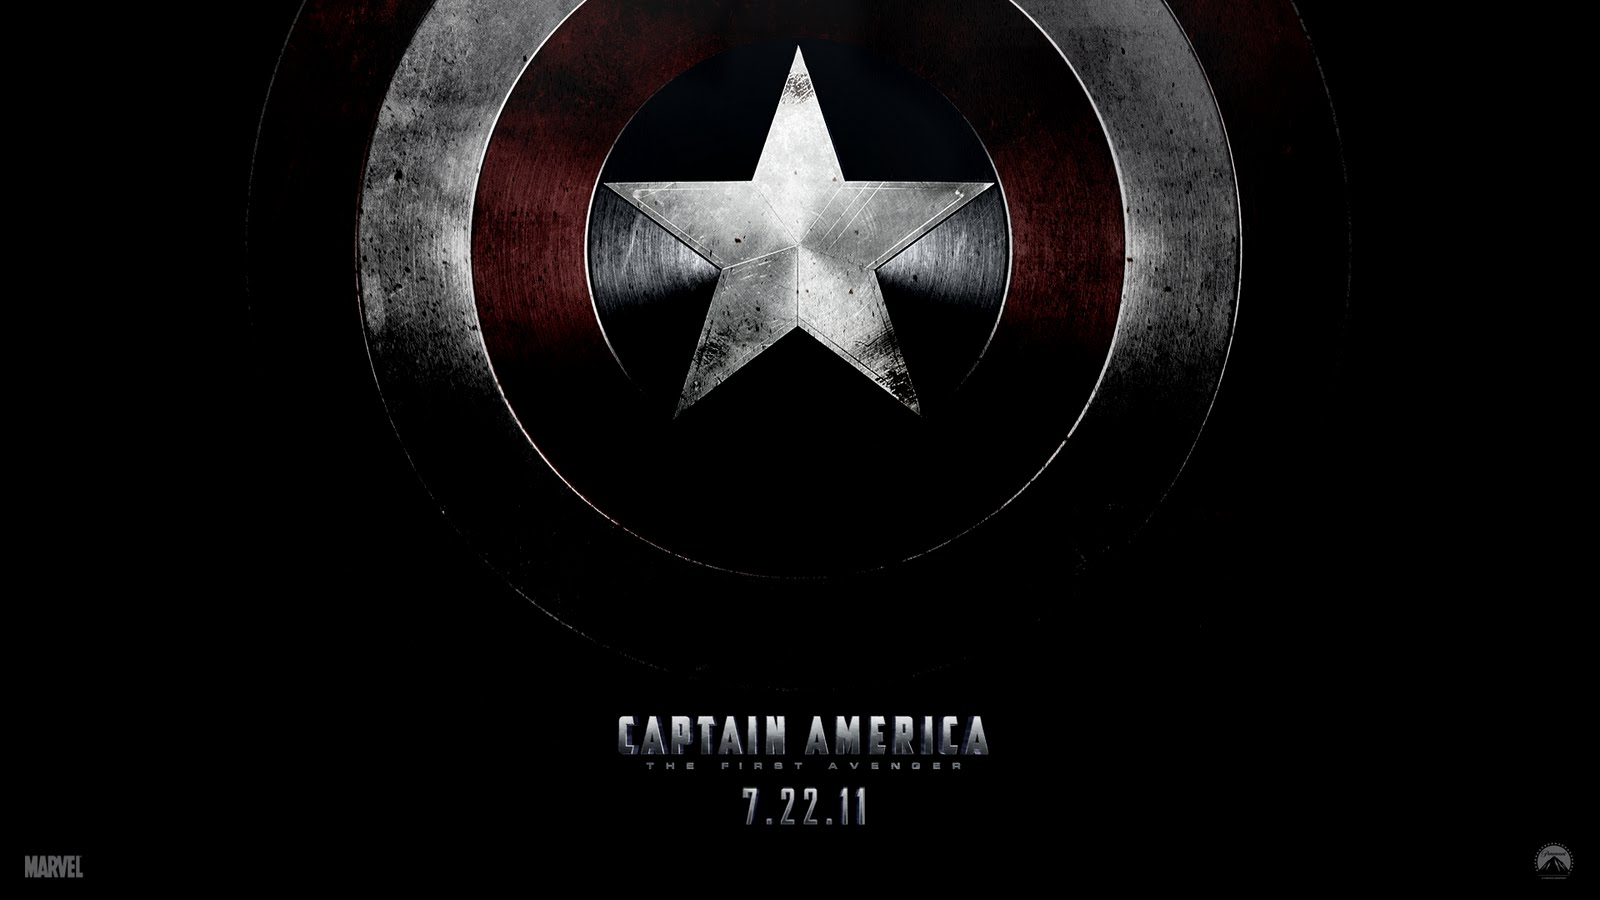 http://3.bp.blogspot.com/-3vREX3MfOEs/TjQ4NVbnotI/AAAAAAAAB40/XX1vq3uLmu0/s1600/Captain_America%2B_The_First_Avenger_Wallpaper_8_1024.jpg